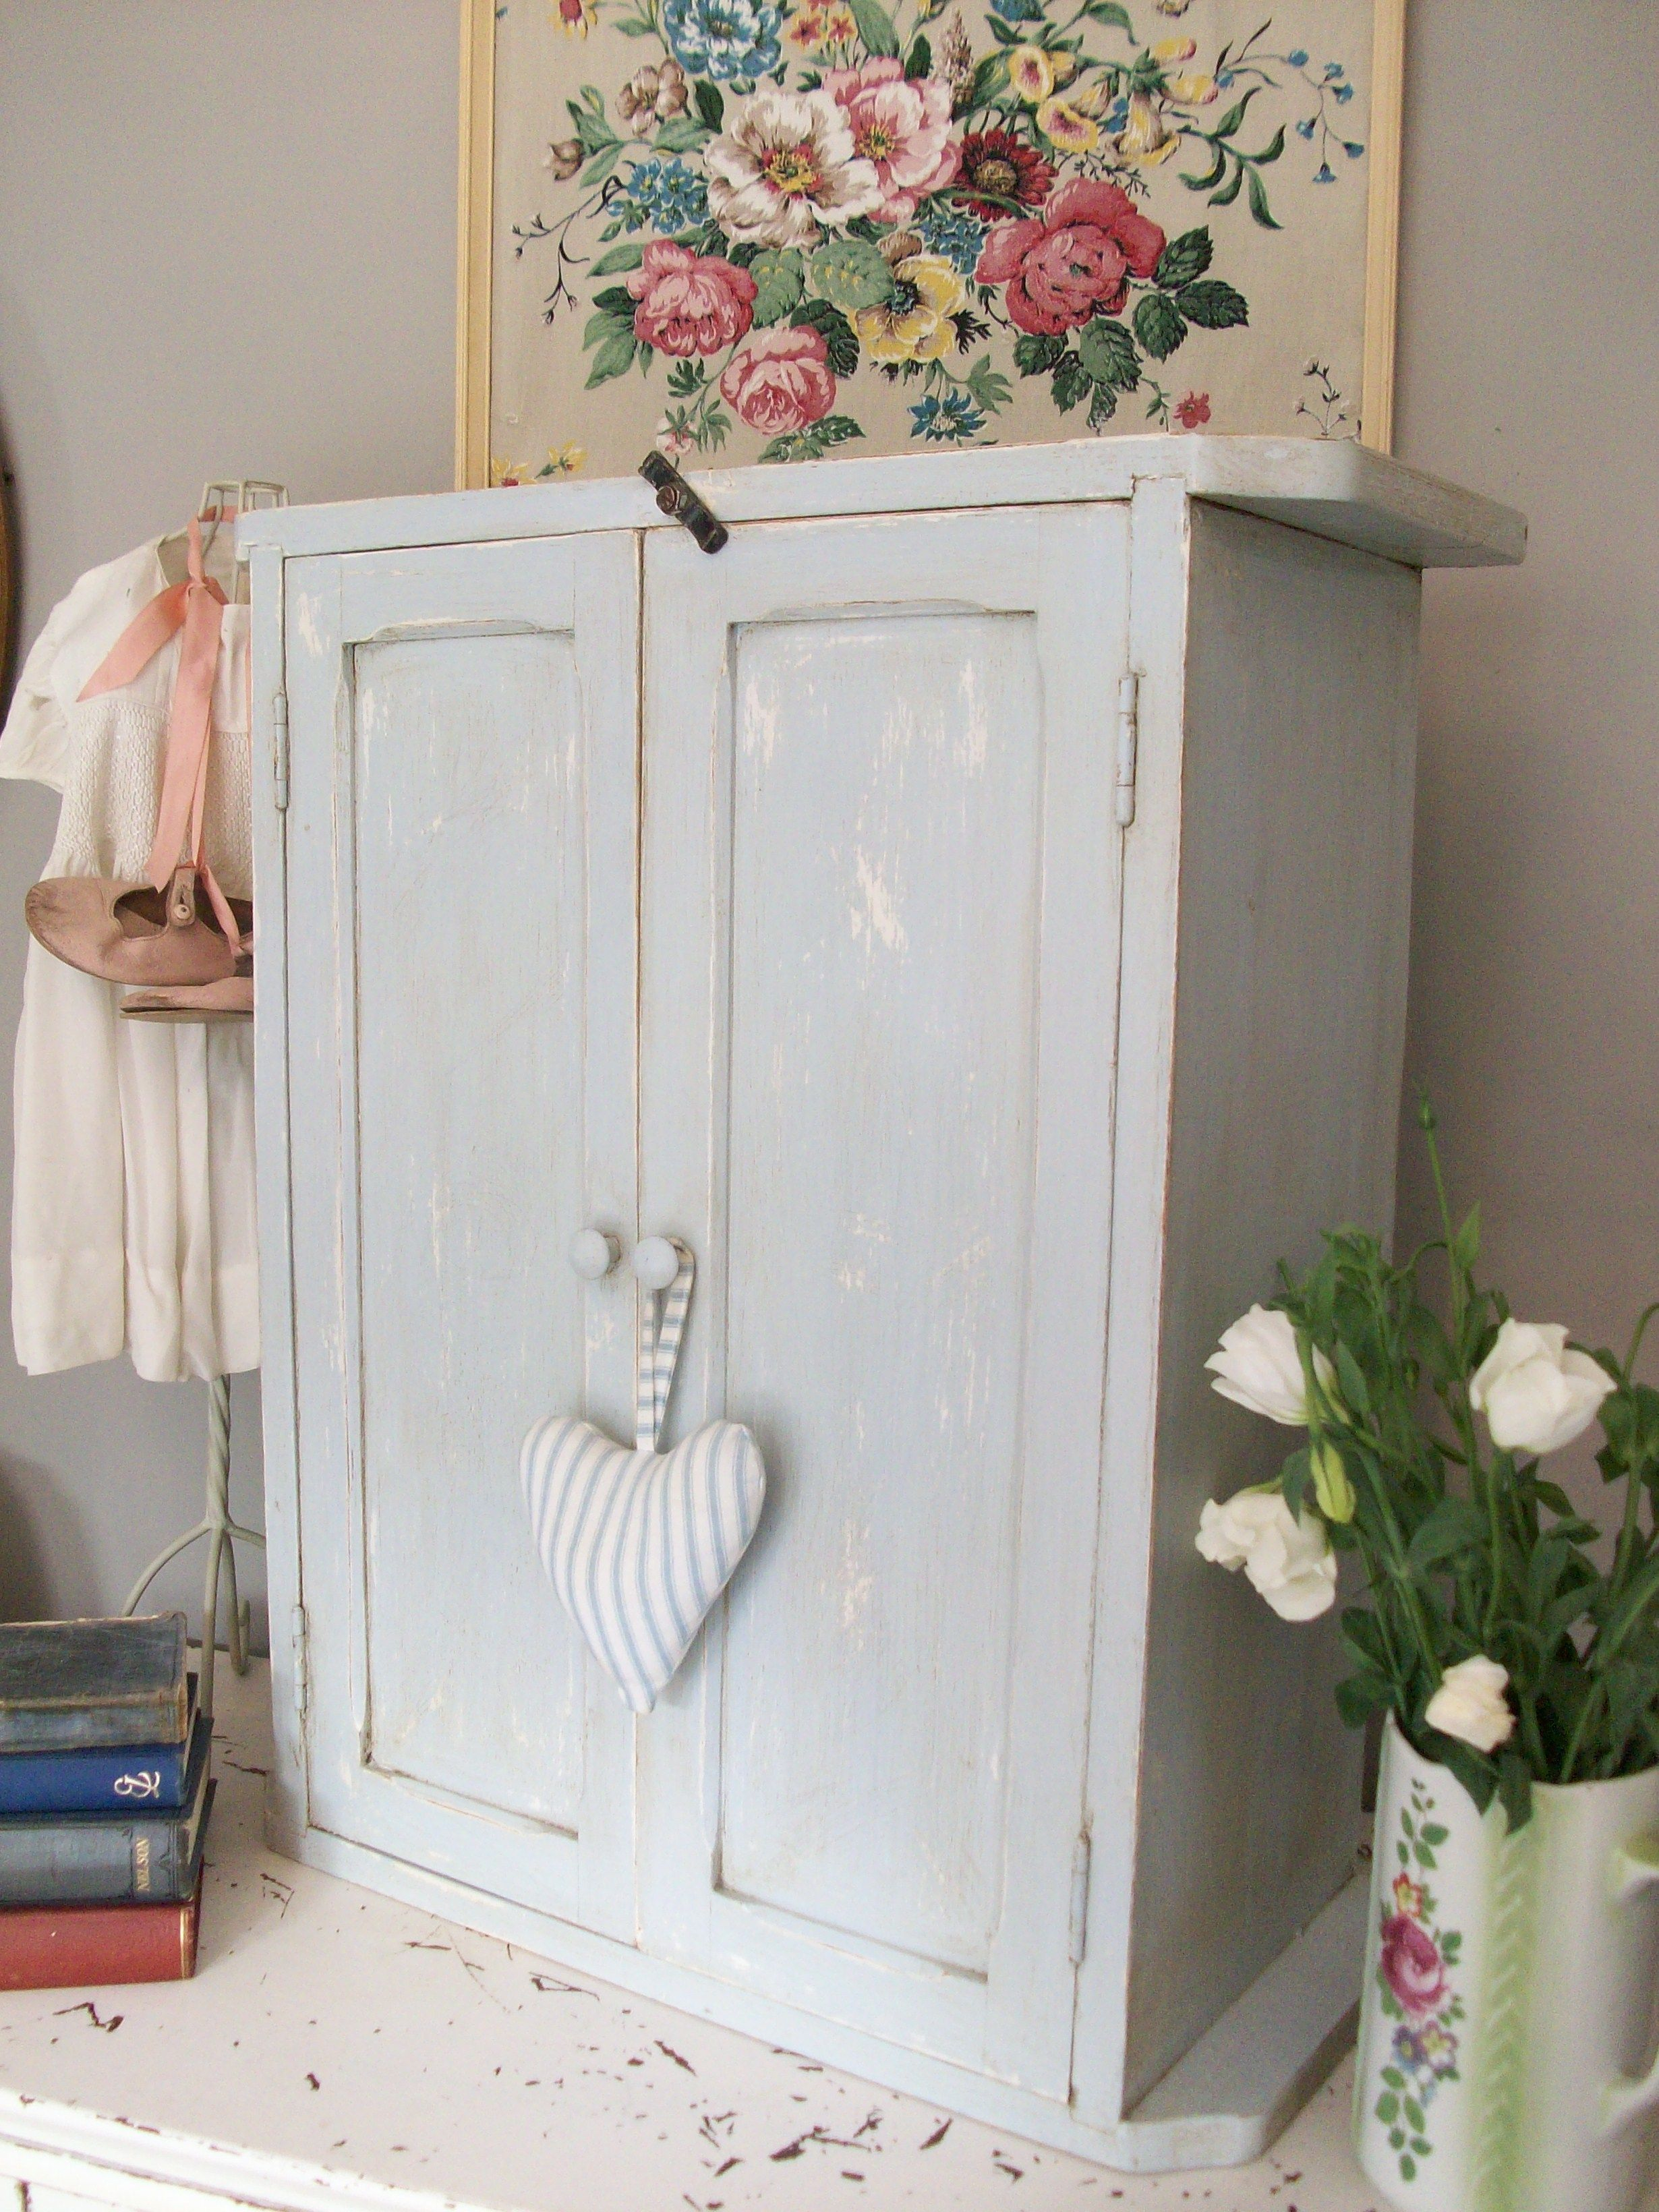 charming island cloud cupboards of image pinterest with diy small paint download white silver cottage granite cupboard kitchen flooring best kitchens cottages stunning